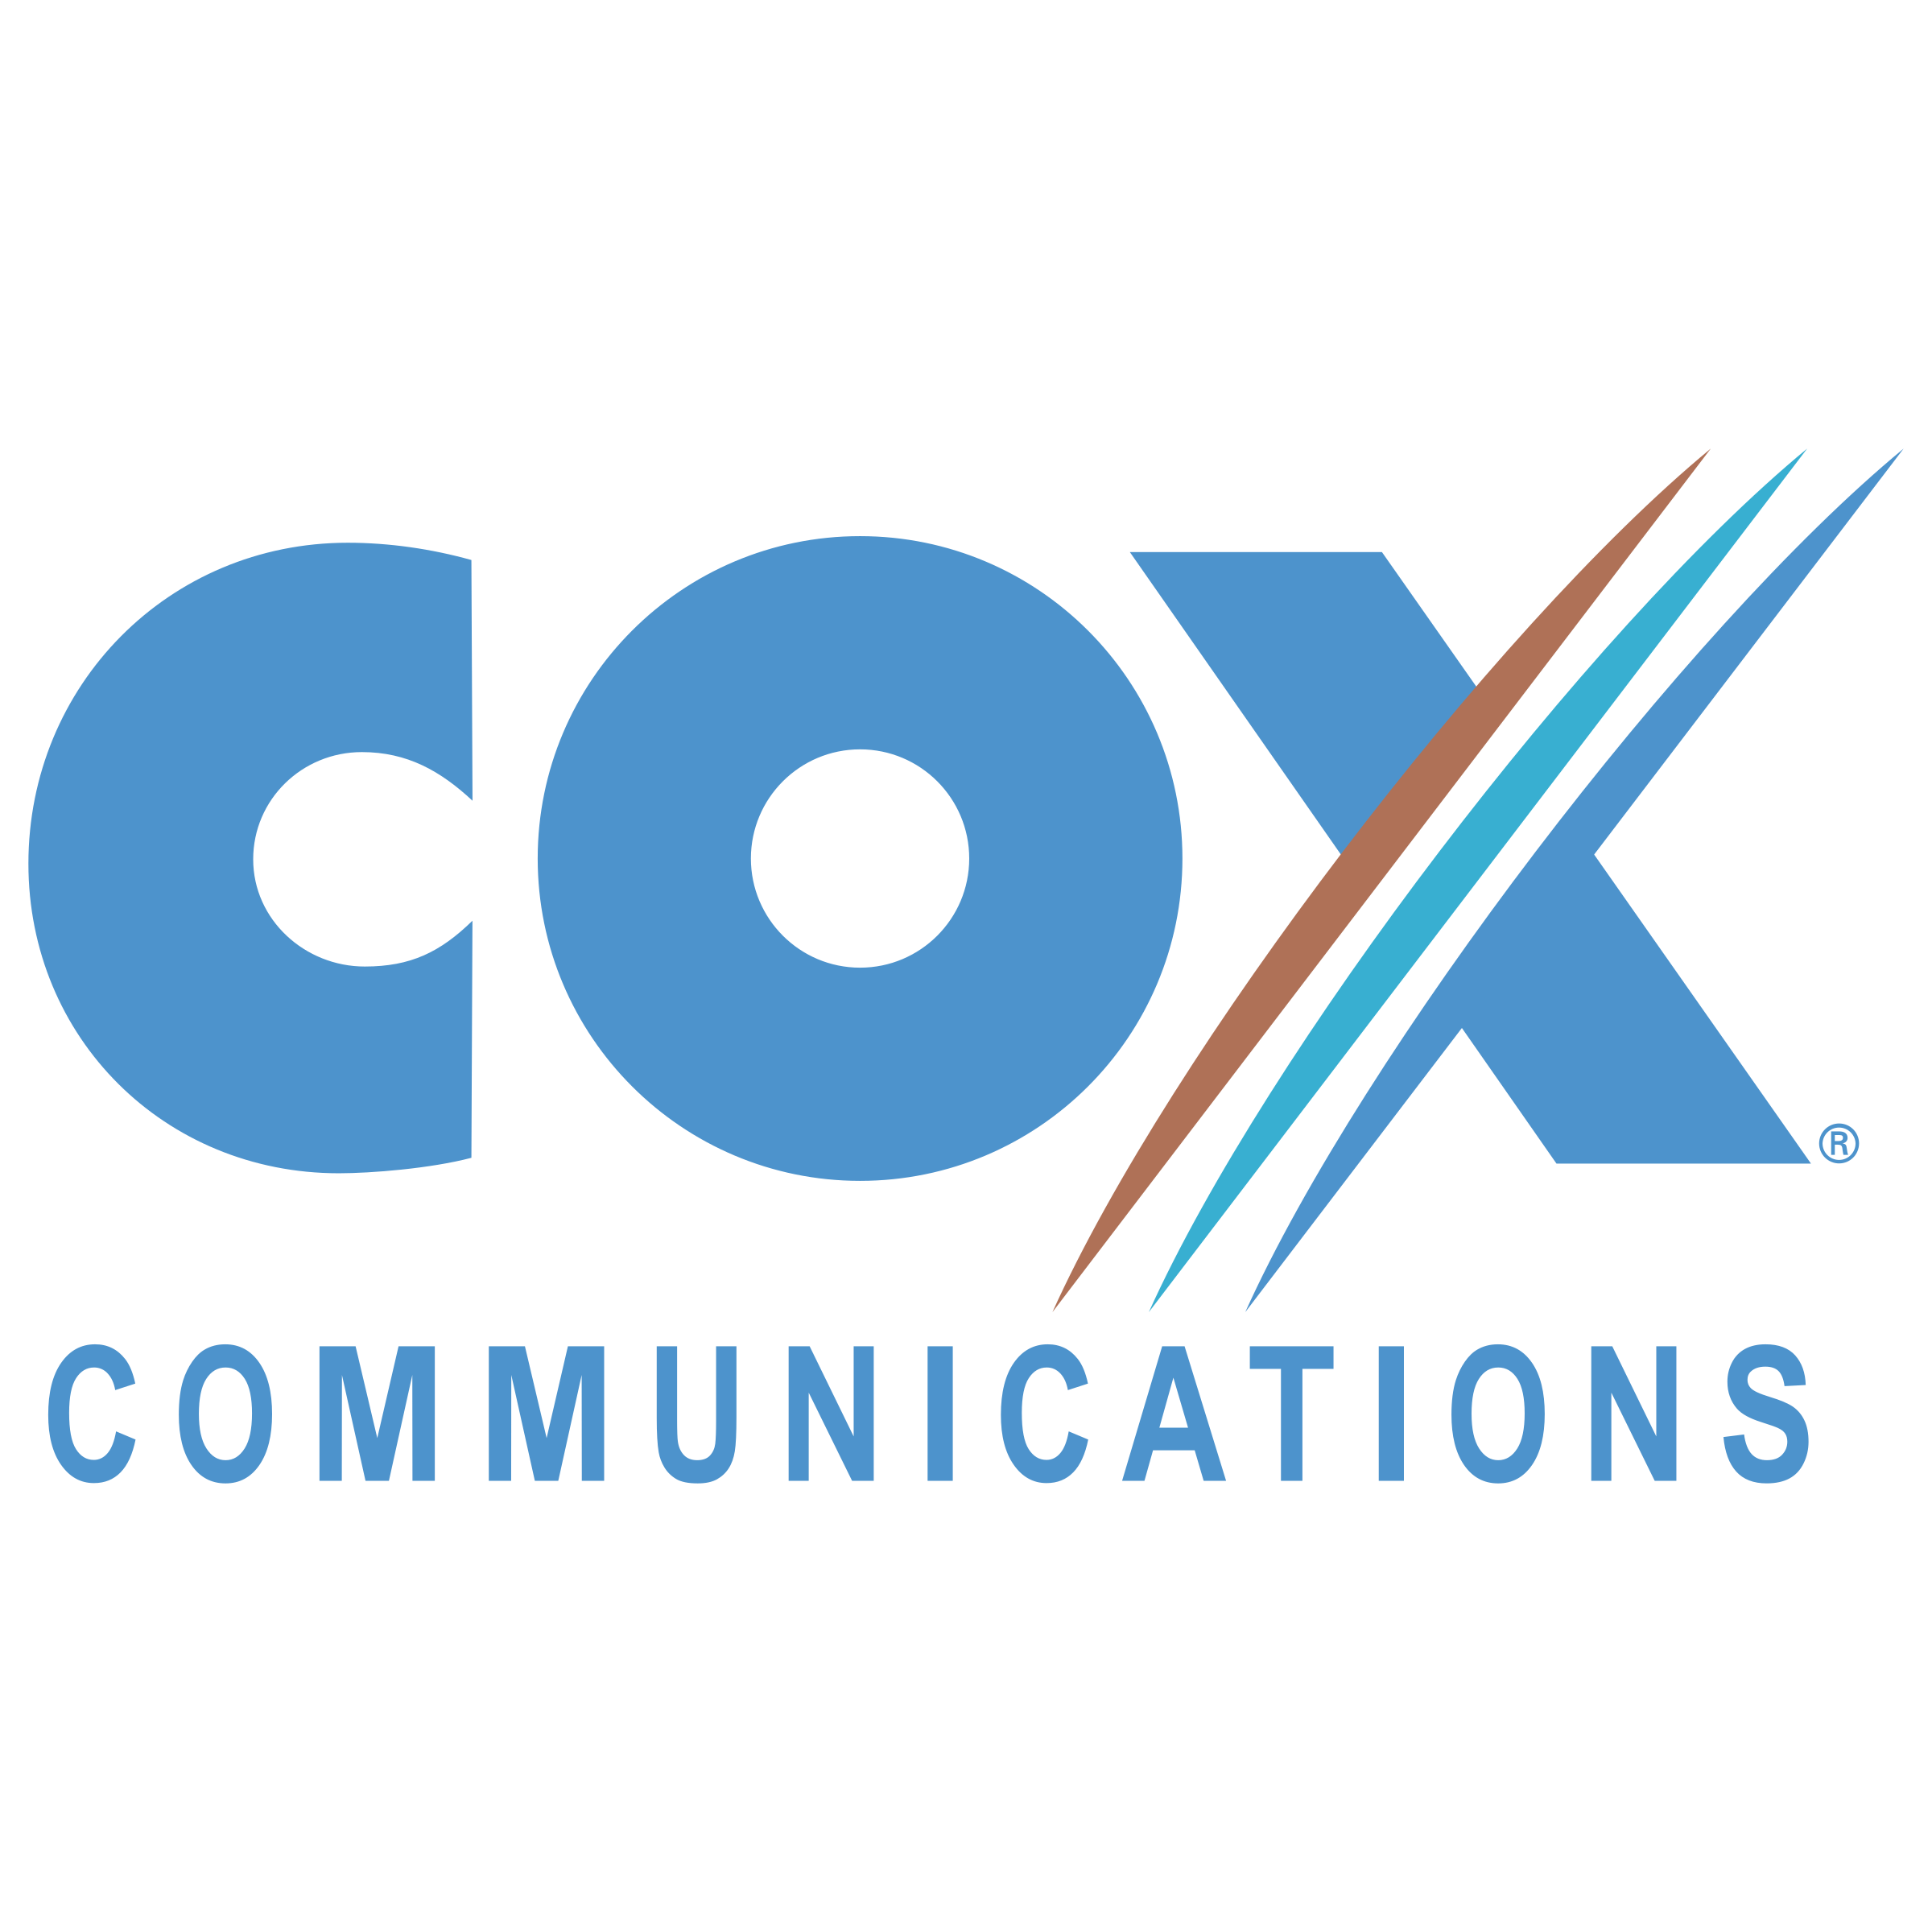 Vector communications. Cox logo png transparent